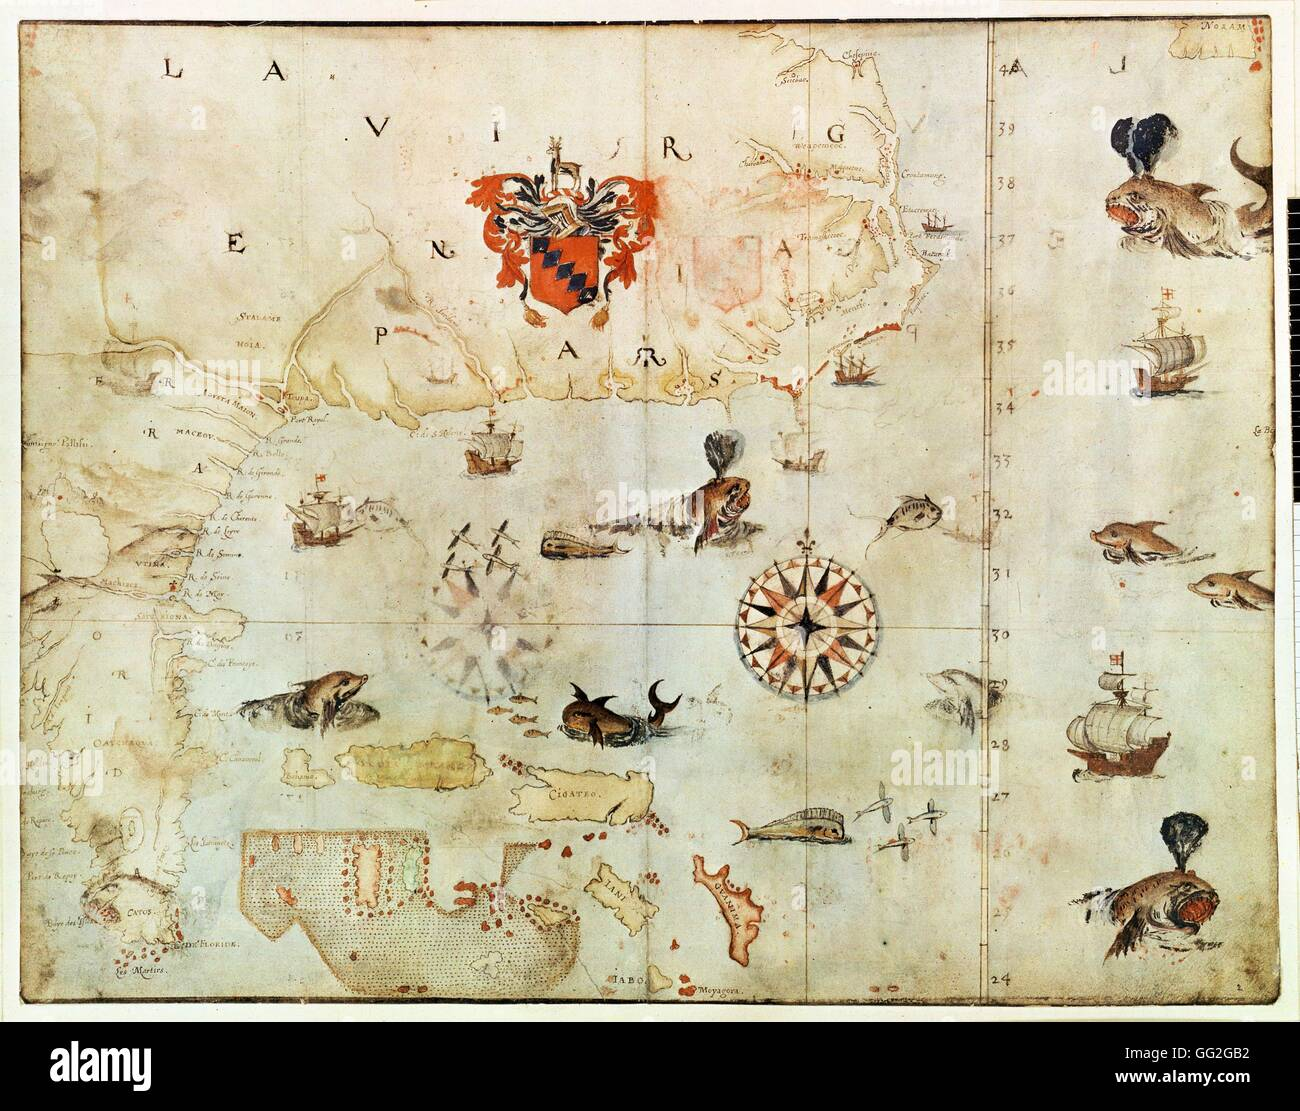 John White English school Map of North America: Virginia and Florida 1585-1593 Pencil, ink and watercolour on paper - Stock Image